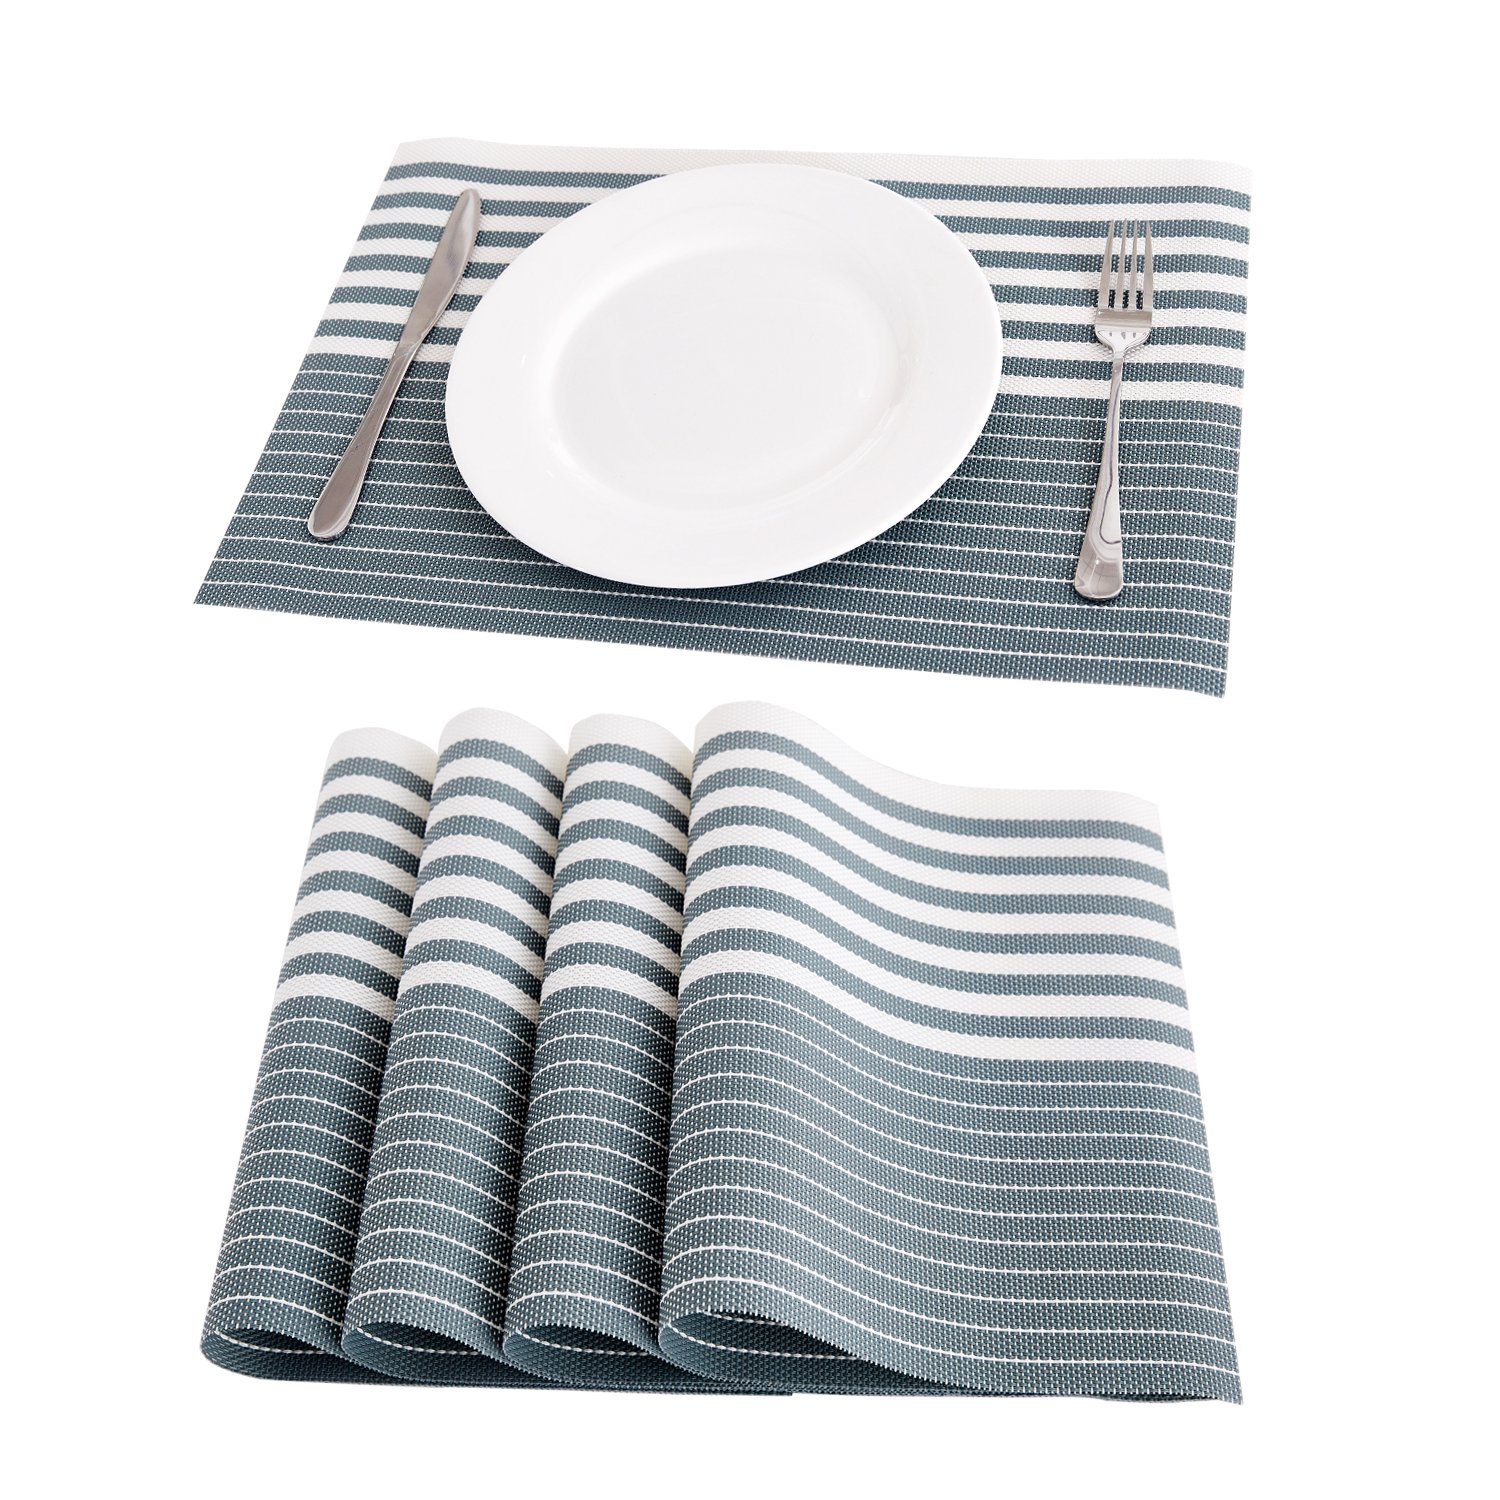 Deconovo Stripe Woven Wipeable Vinyl PVC Placemats Anti-Slip Washable Table Mats Dining Table 12x18 inch Steel-Gray Set of 4 by Deconovo